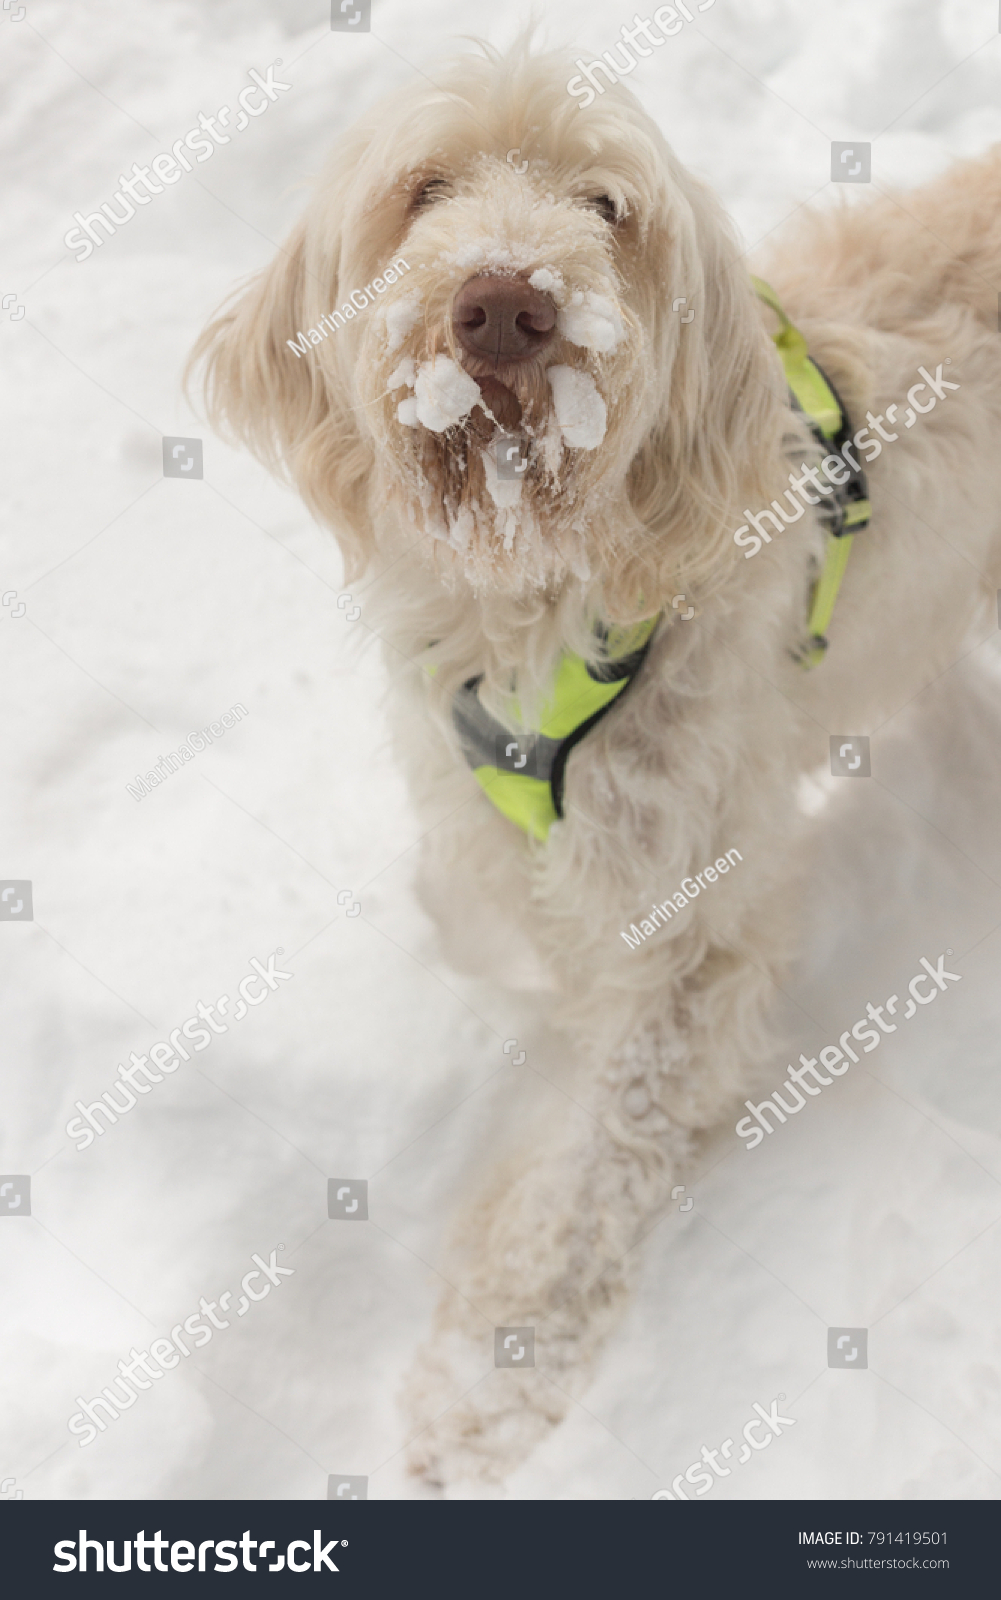 Funny Looking White Wirehaired Dog Spinone Stock Photo (Edit Now ...